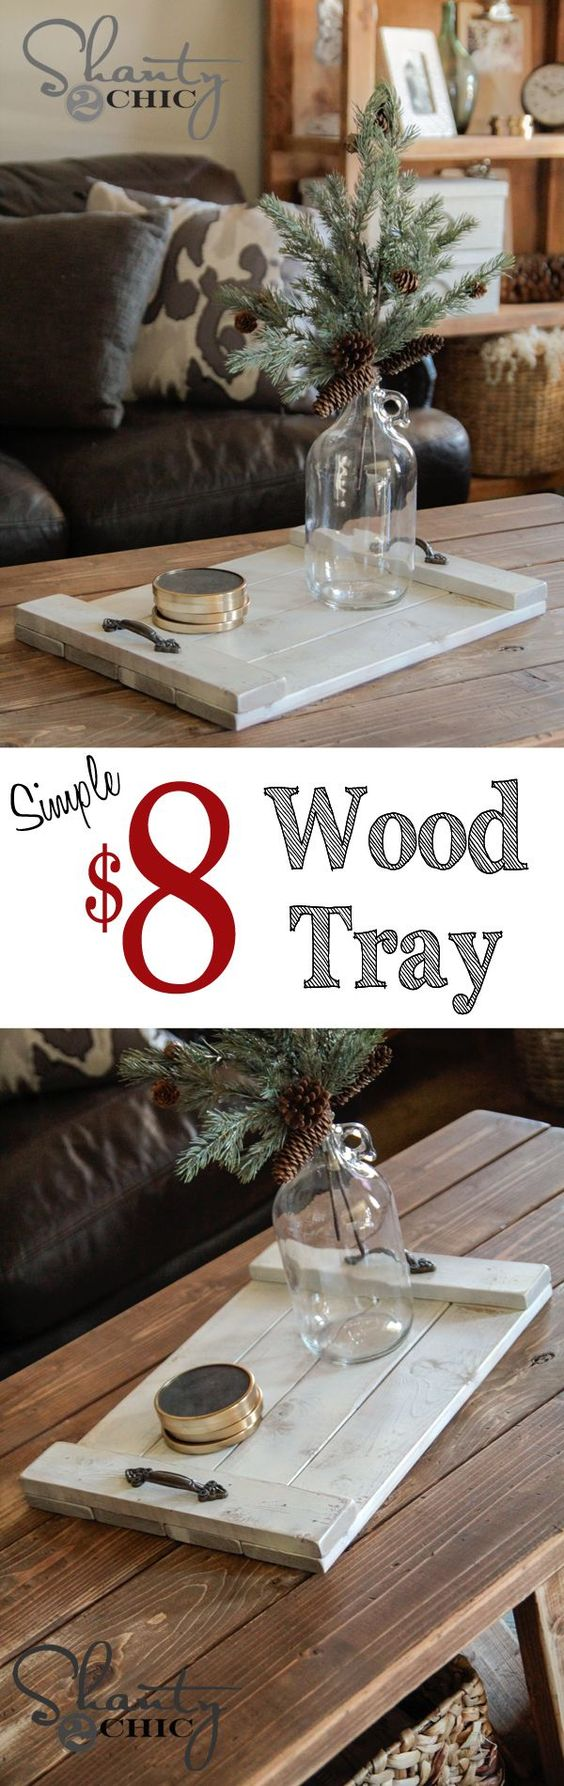 Diy 8 Wood Tray Pinterest Wood Tray Christmas Gift Ideas And Christmas Gifts